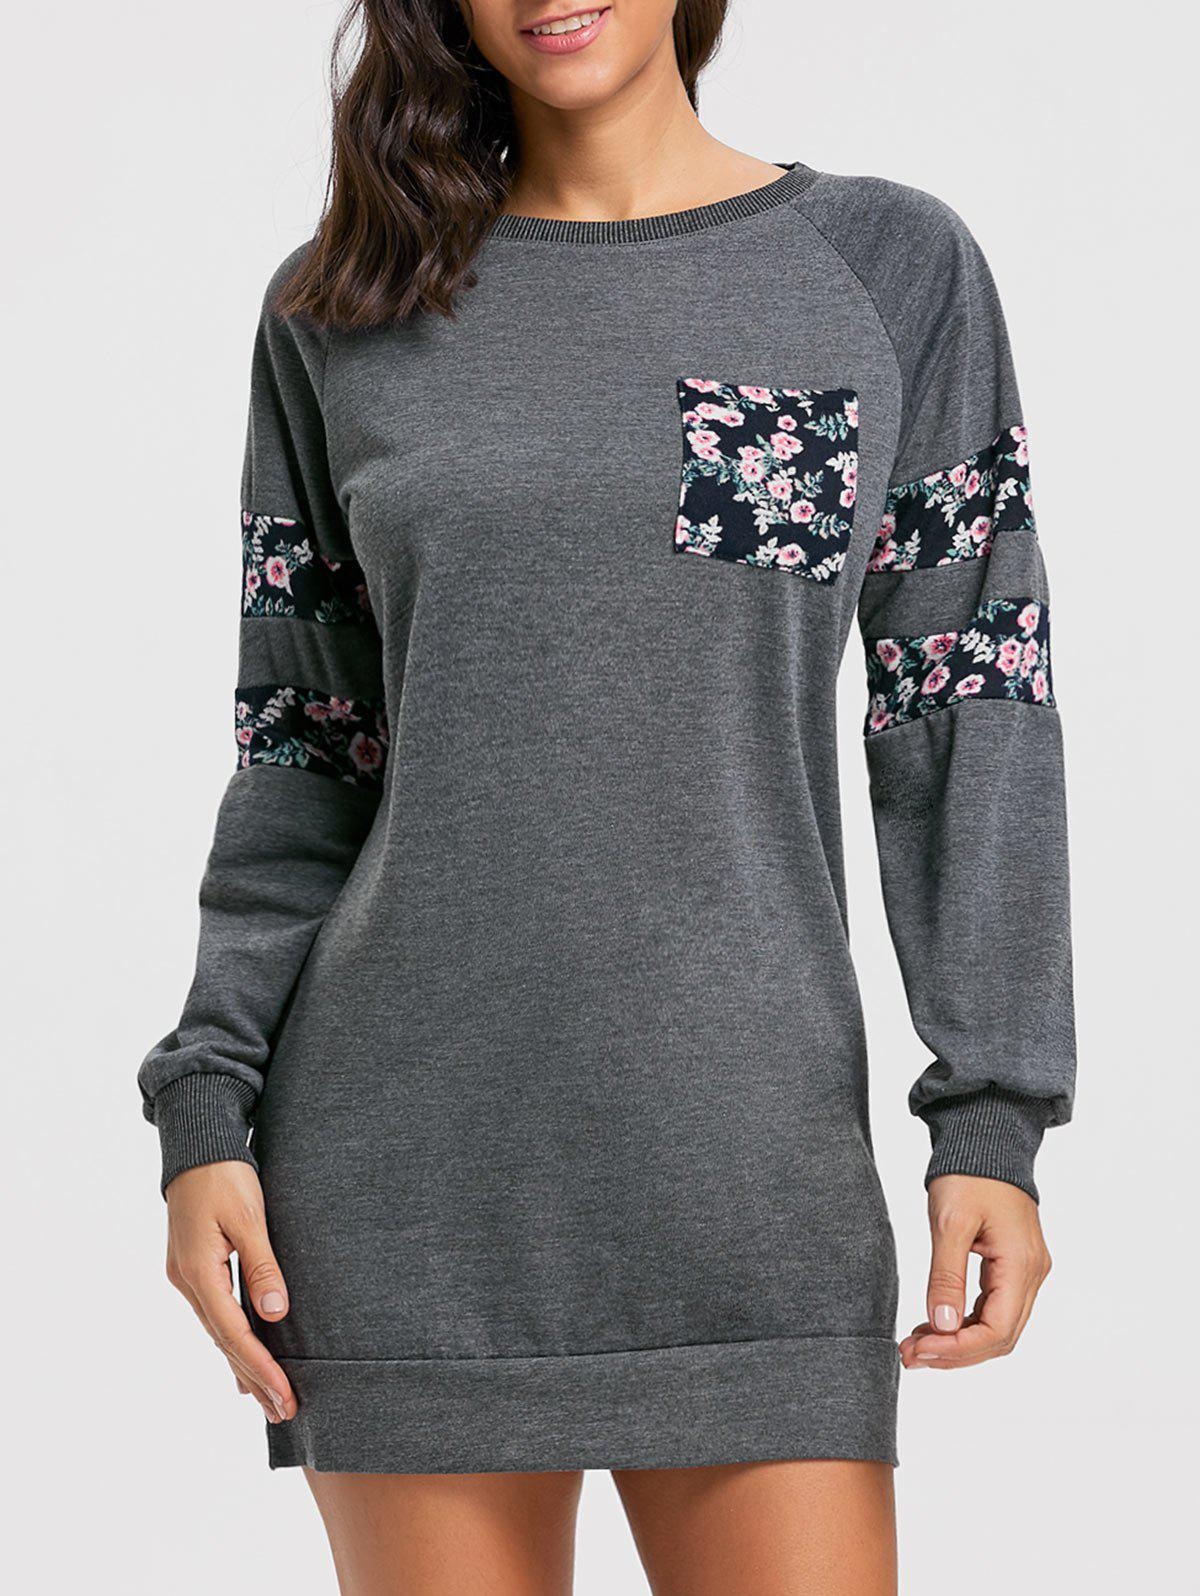 Crew Neck Floral Print Mini Sweatshirt Dress - DEEP GRAY L